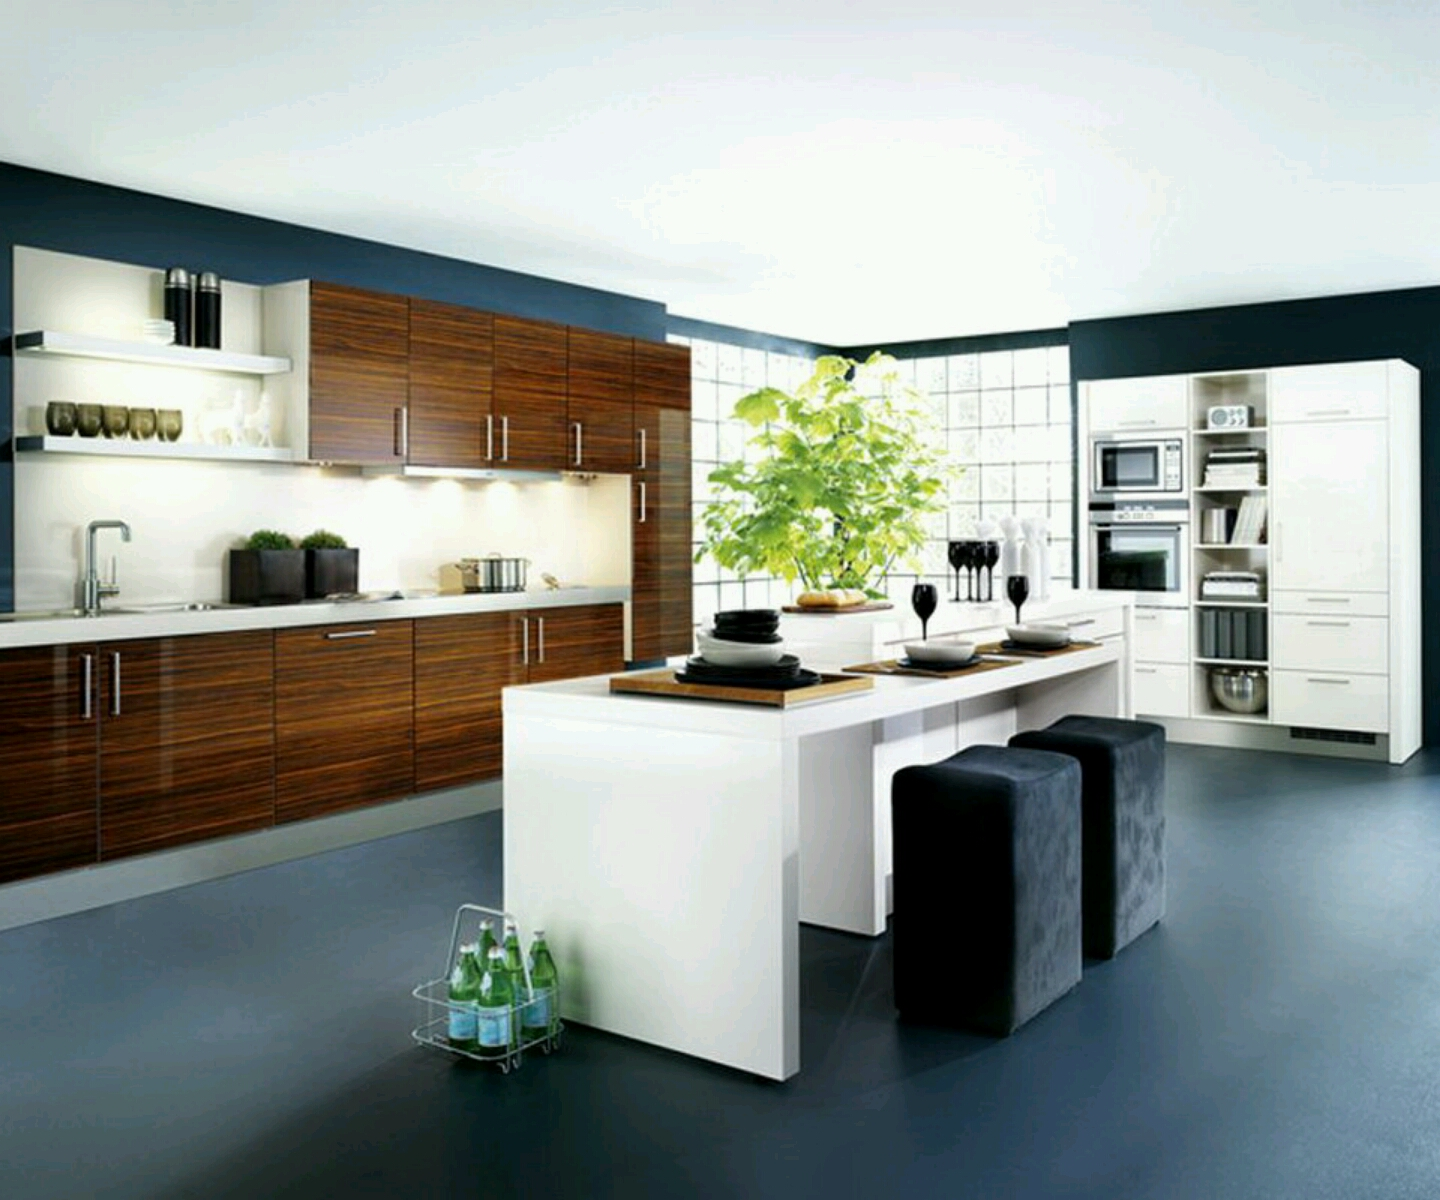 New home designs latest kitchen cabinets designs modern for Contemporary kitchen